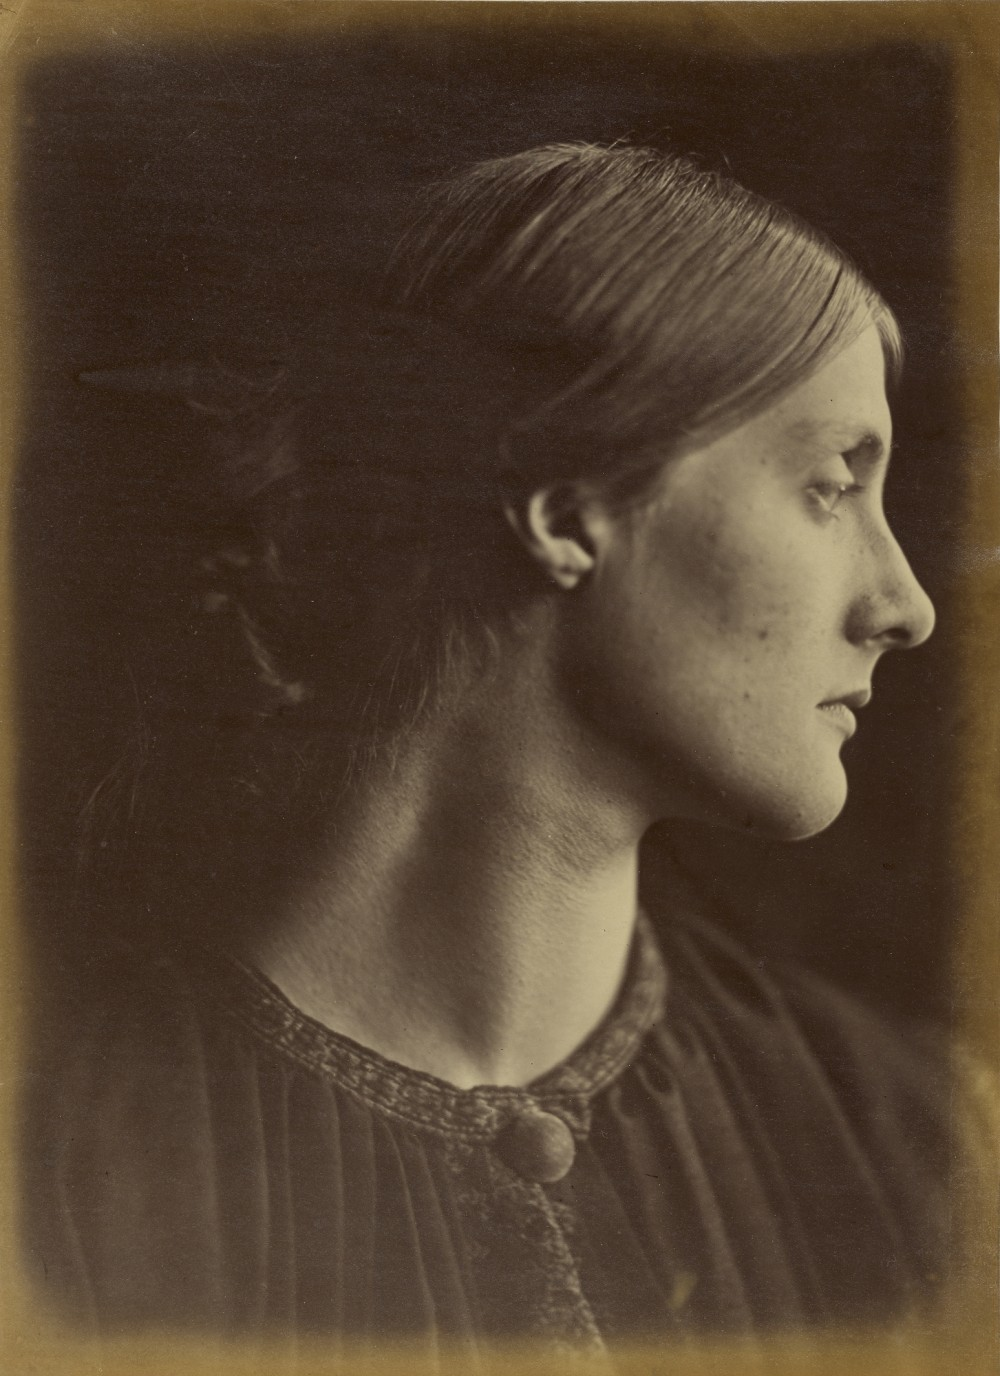 Mrs. Herbert Duckworth / Julia Margaret Cameron. Albumen silver print. 13 3/8 x 9 13/16 in. 84.XM.443.21. J. Paul Getty Museum, Los Angeles